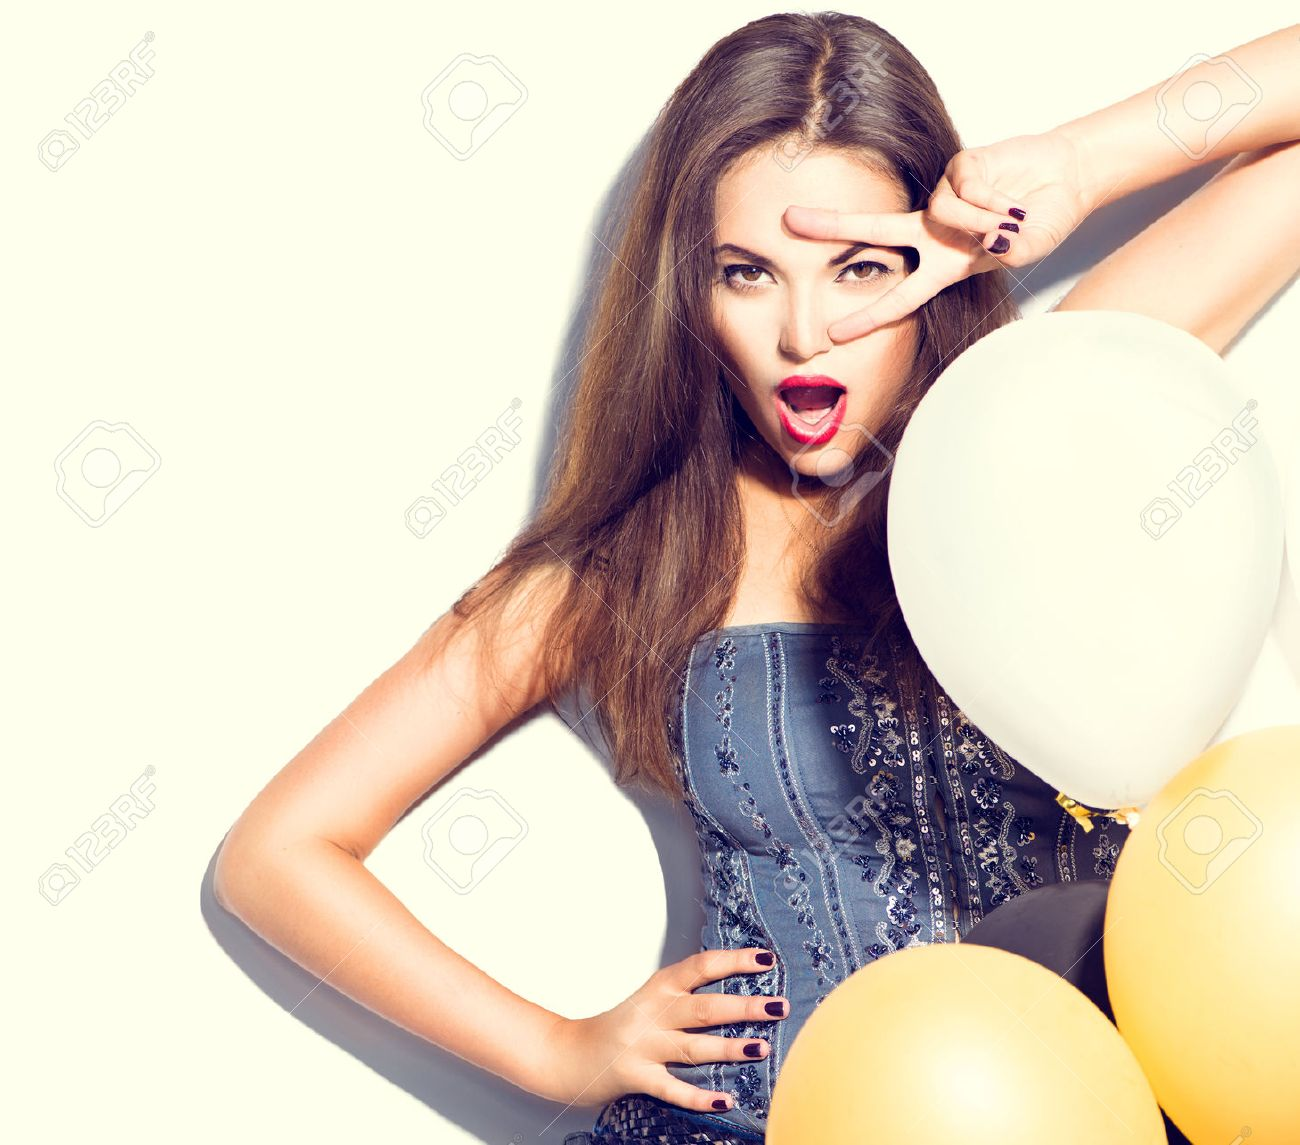 Beautiful fashion model girl with colorful balloons posing over white Stock Photo - 45198210